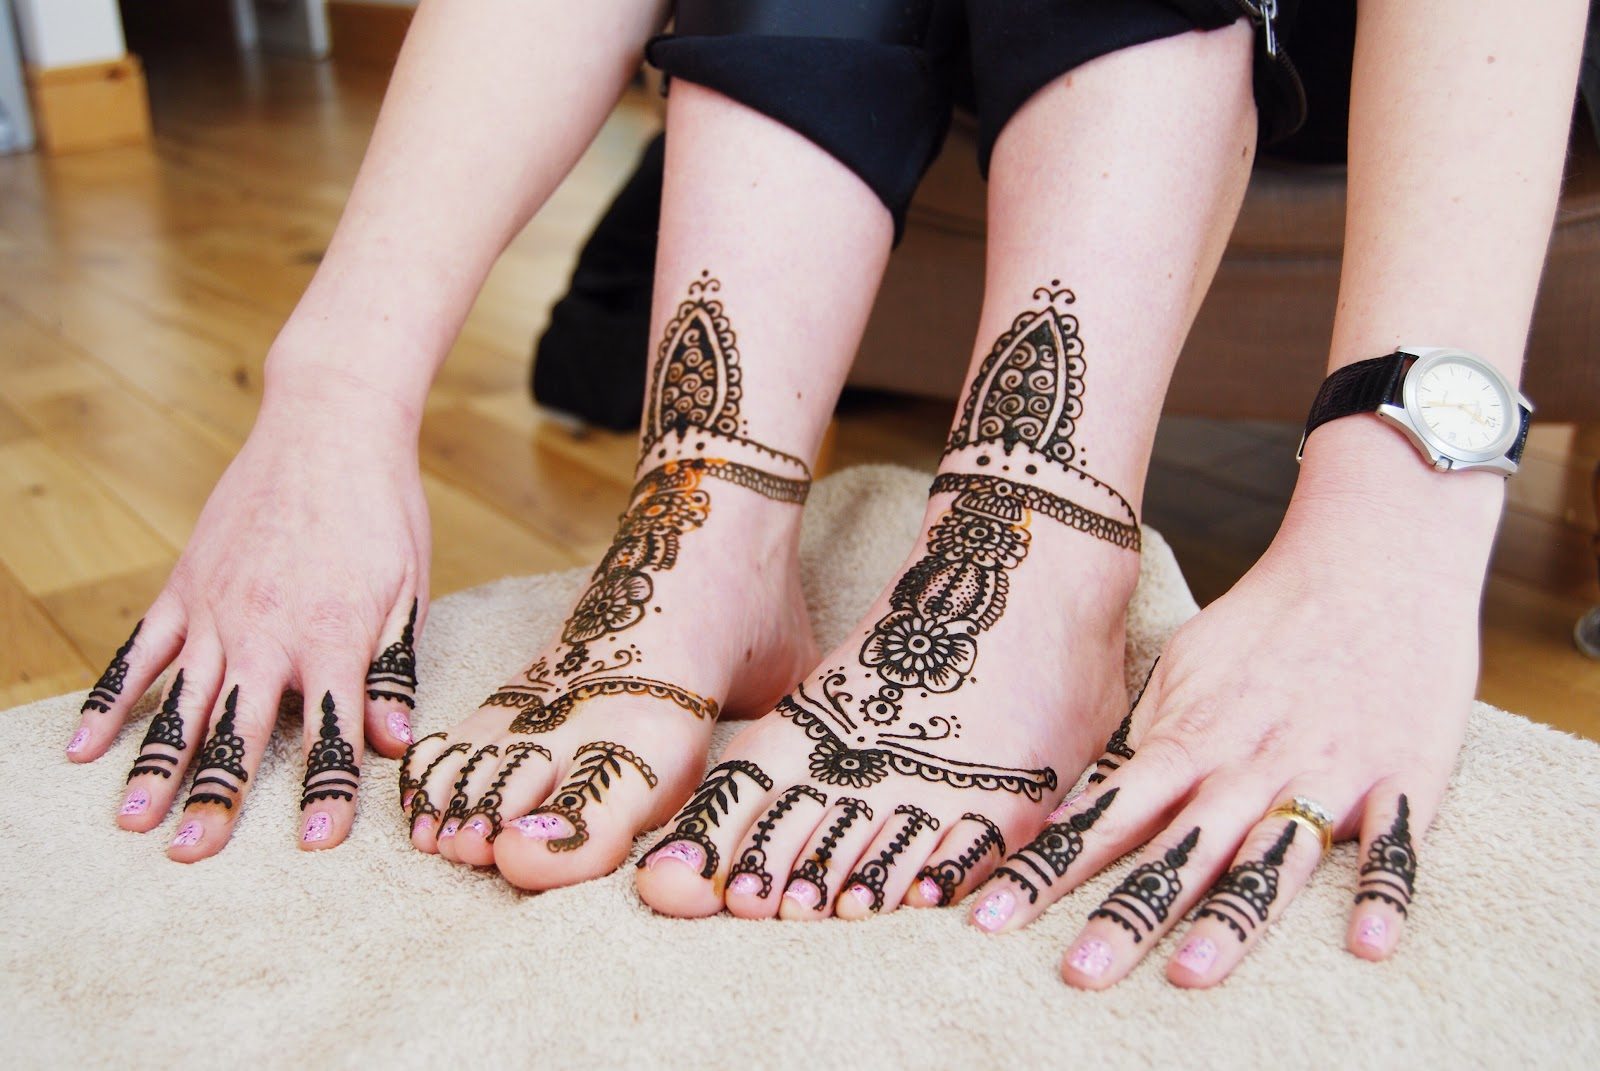 Love Lincoln Lincoln Henna Design By Carys Thomas Brick Dust